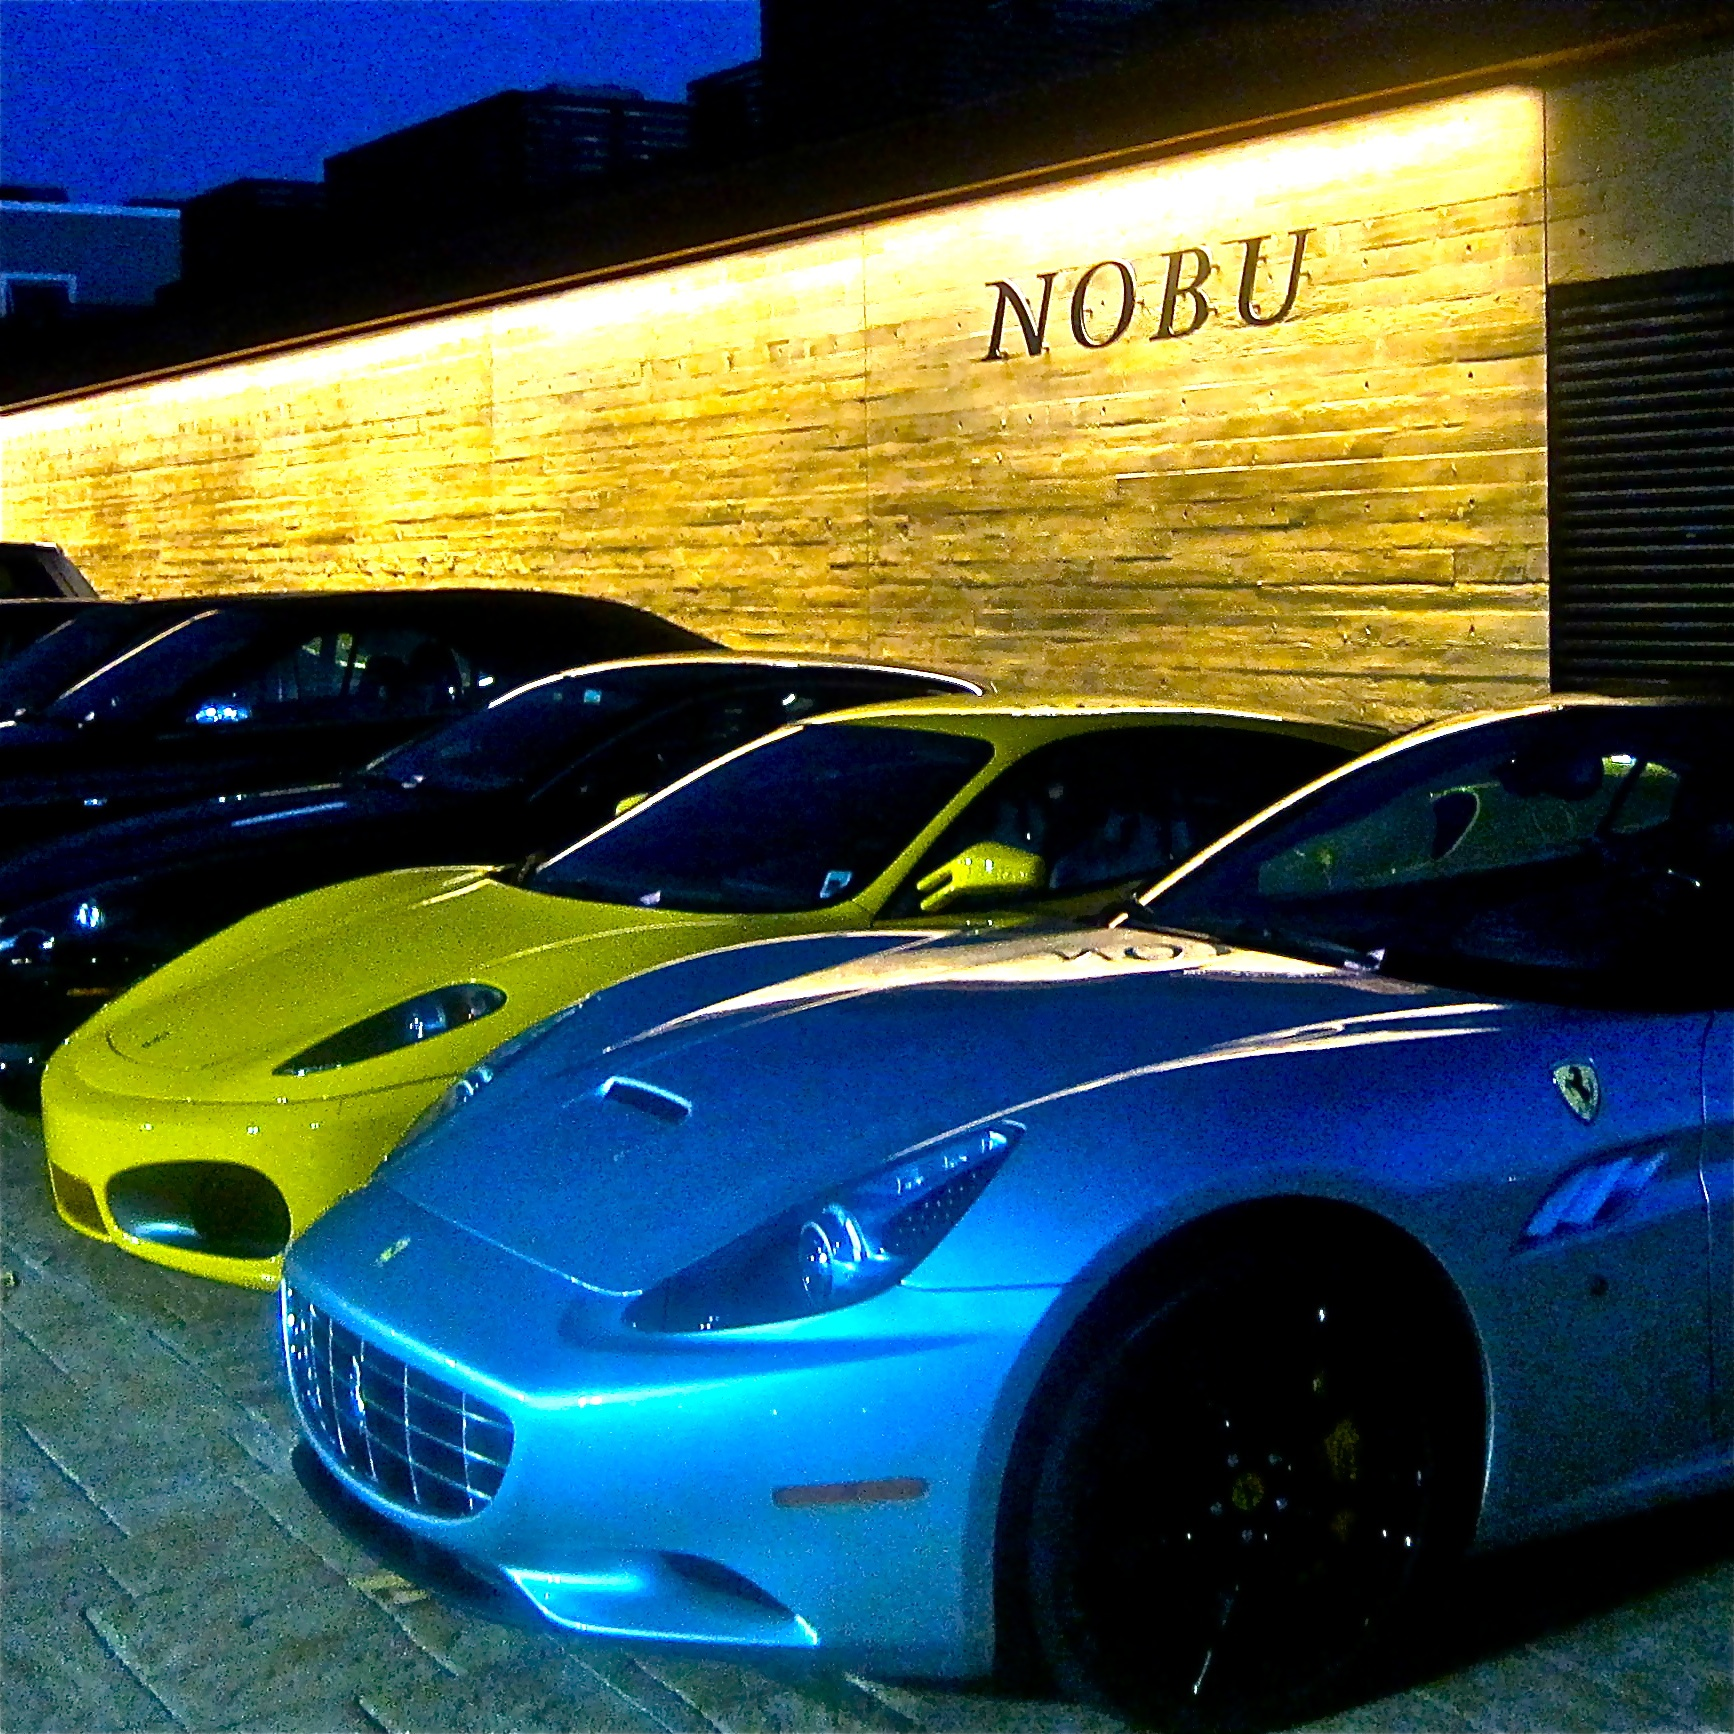 27 Miles Malibu >> NOBU MALIBU May Be Hottest, Most Exciting New Restaurant in Nation! | HuffPost